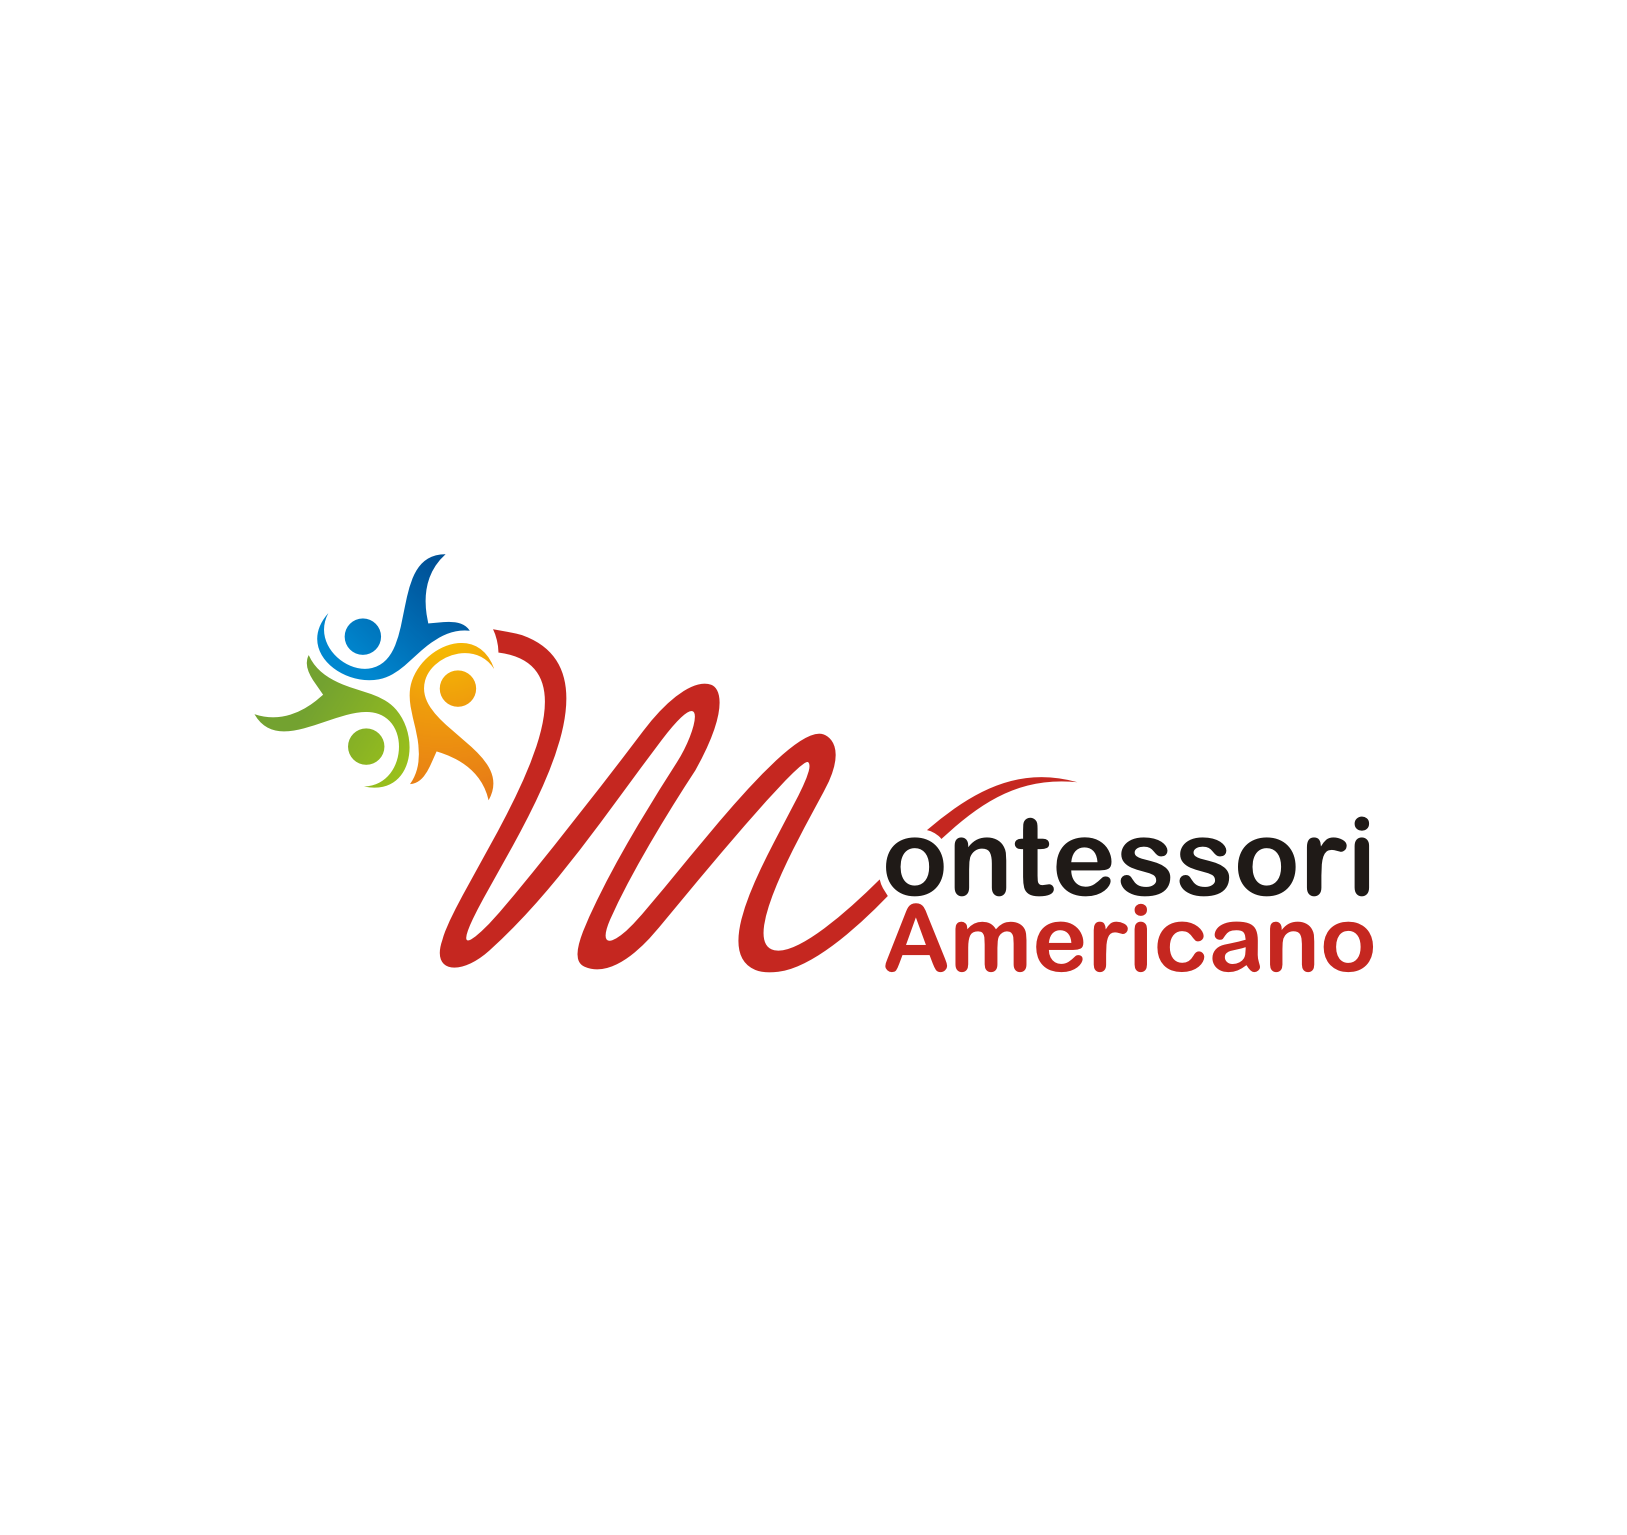 new logo for Montessori Americano